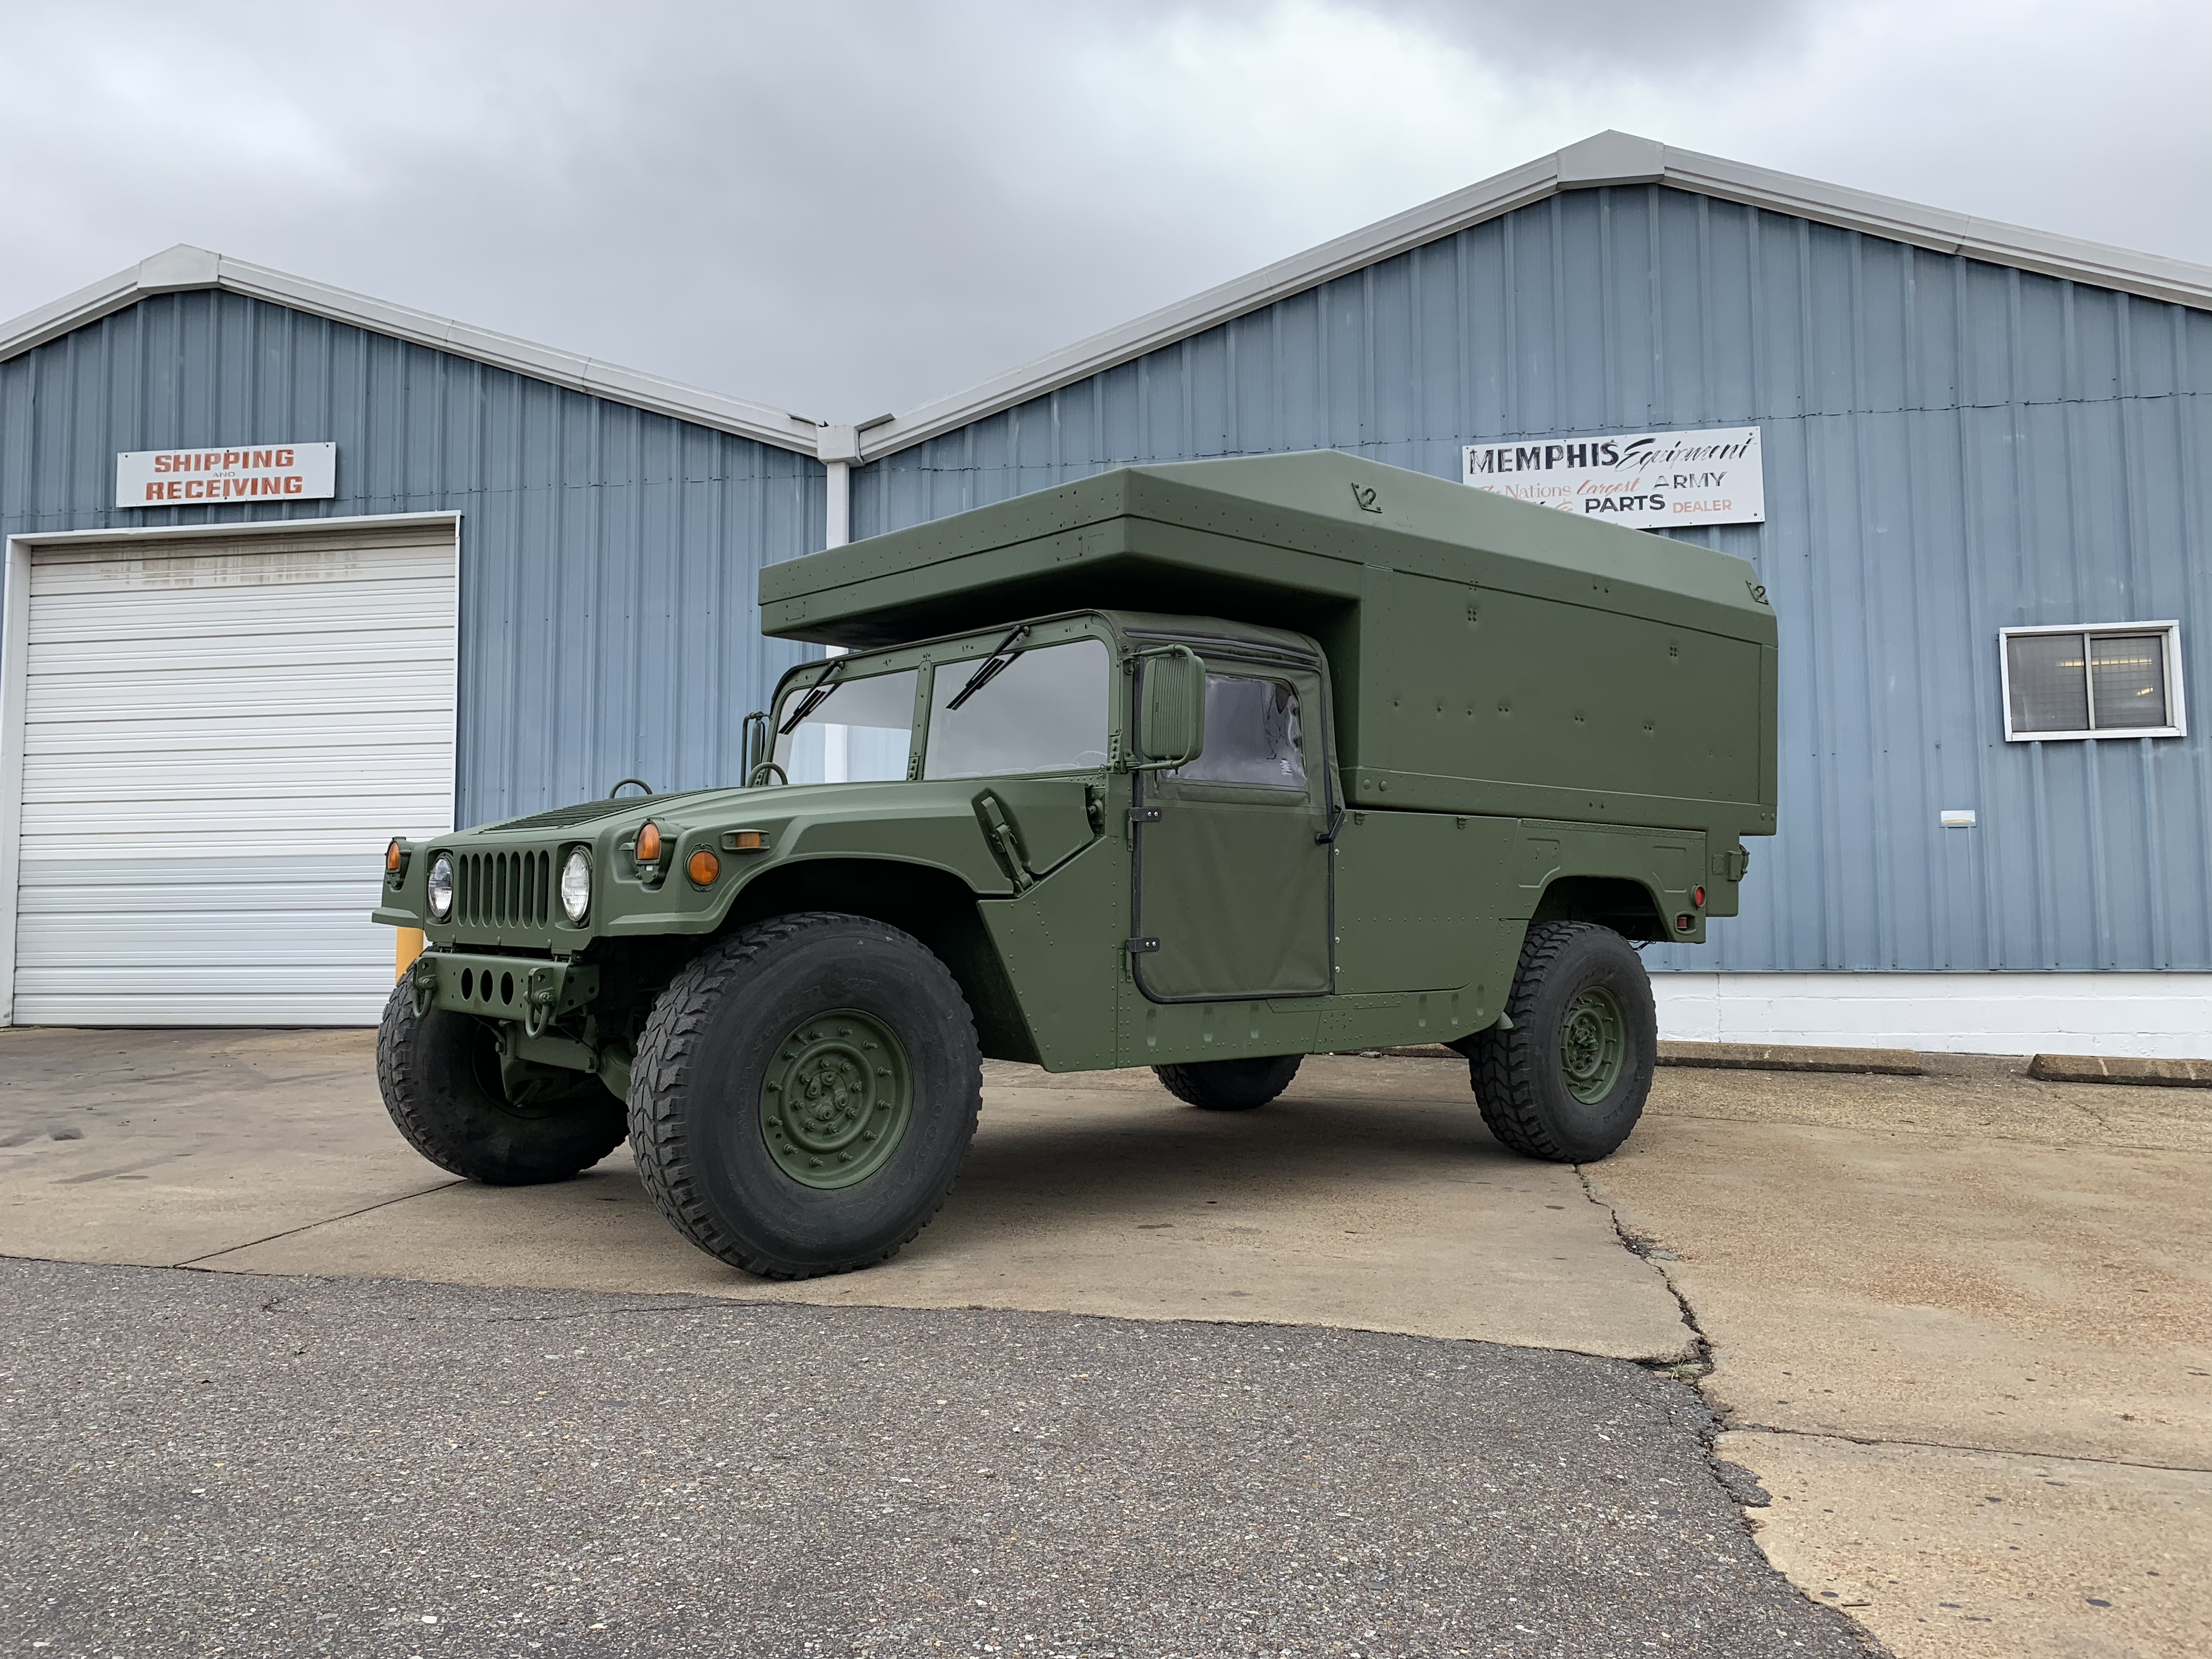 Army surplus vehicles, army trucks, military truck parts ... | military surplus hummer tires